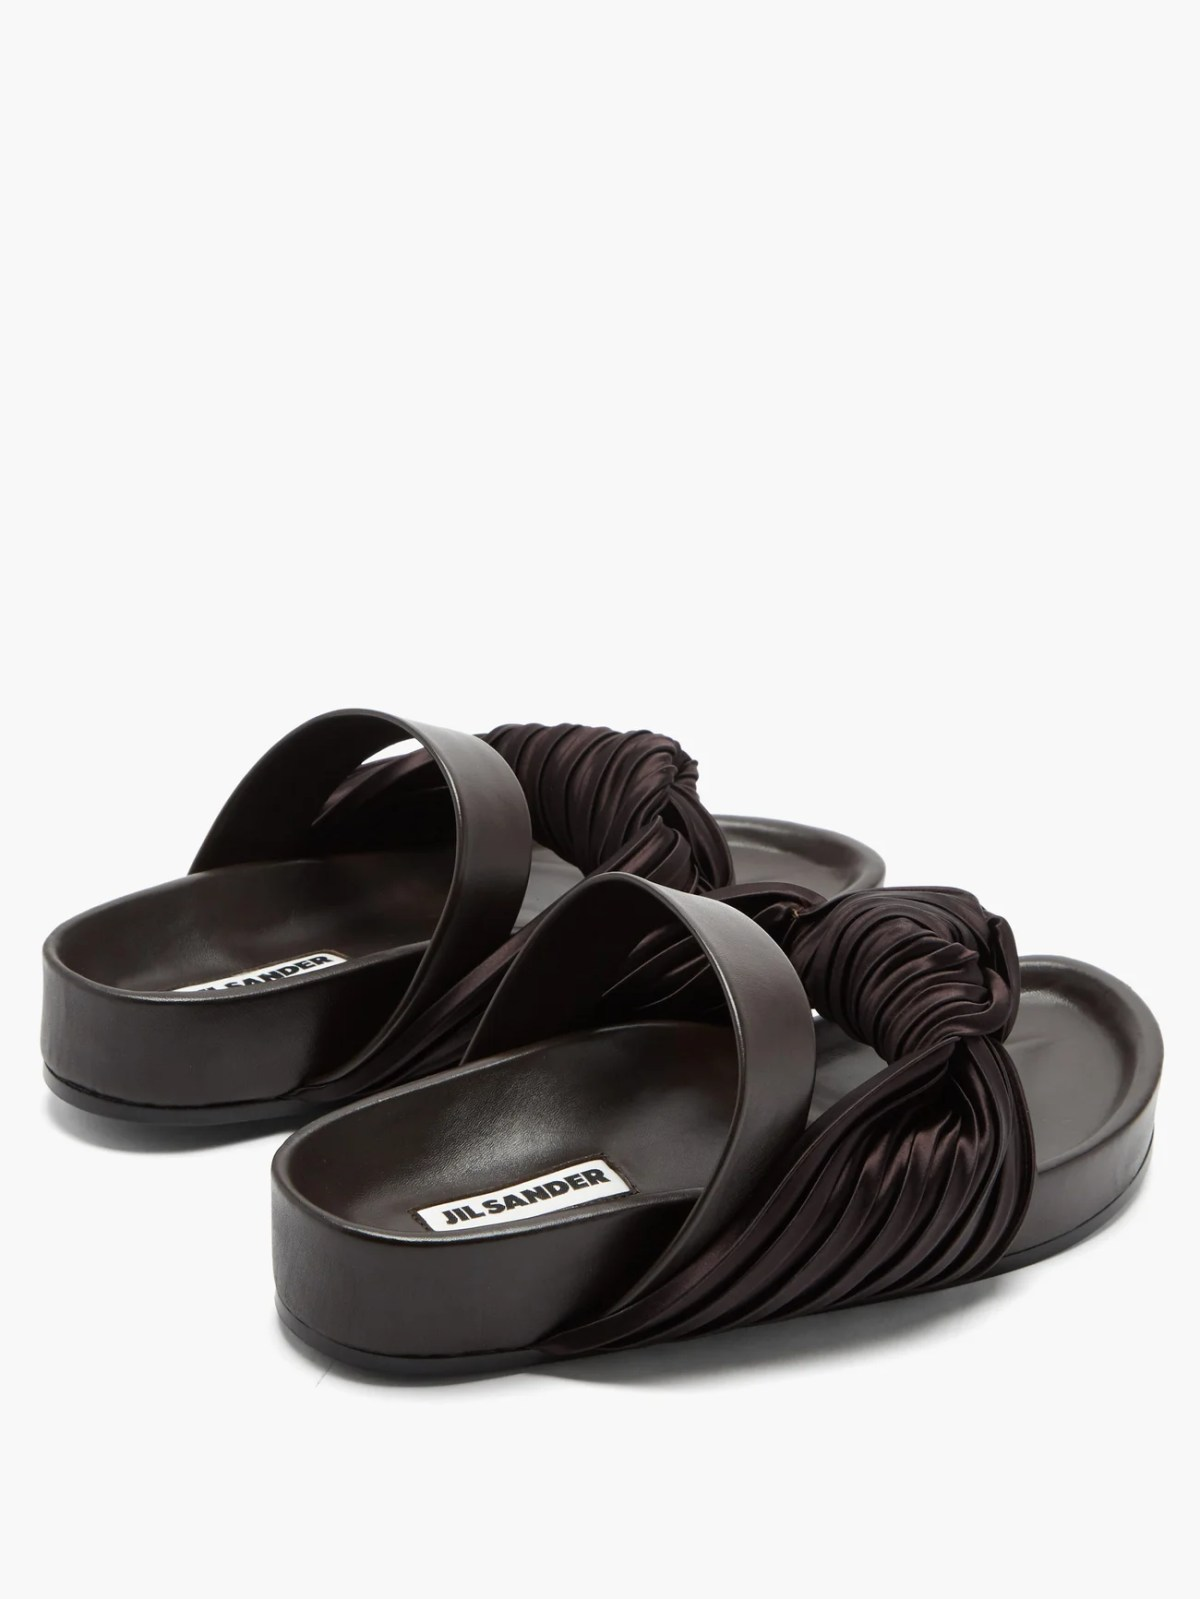 Slip on shoes to show the reader